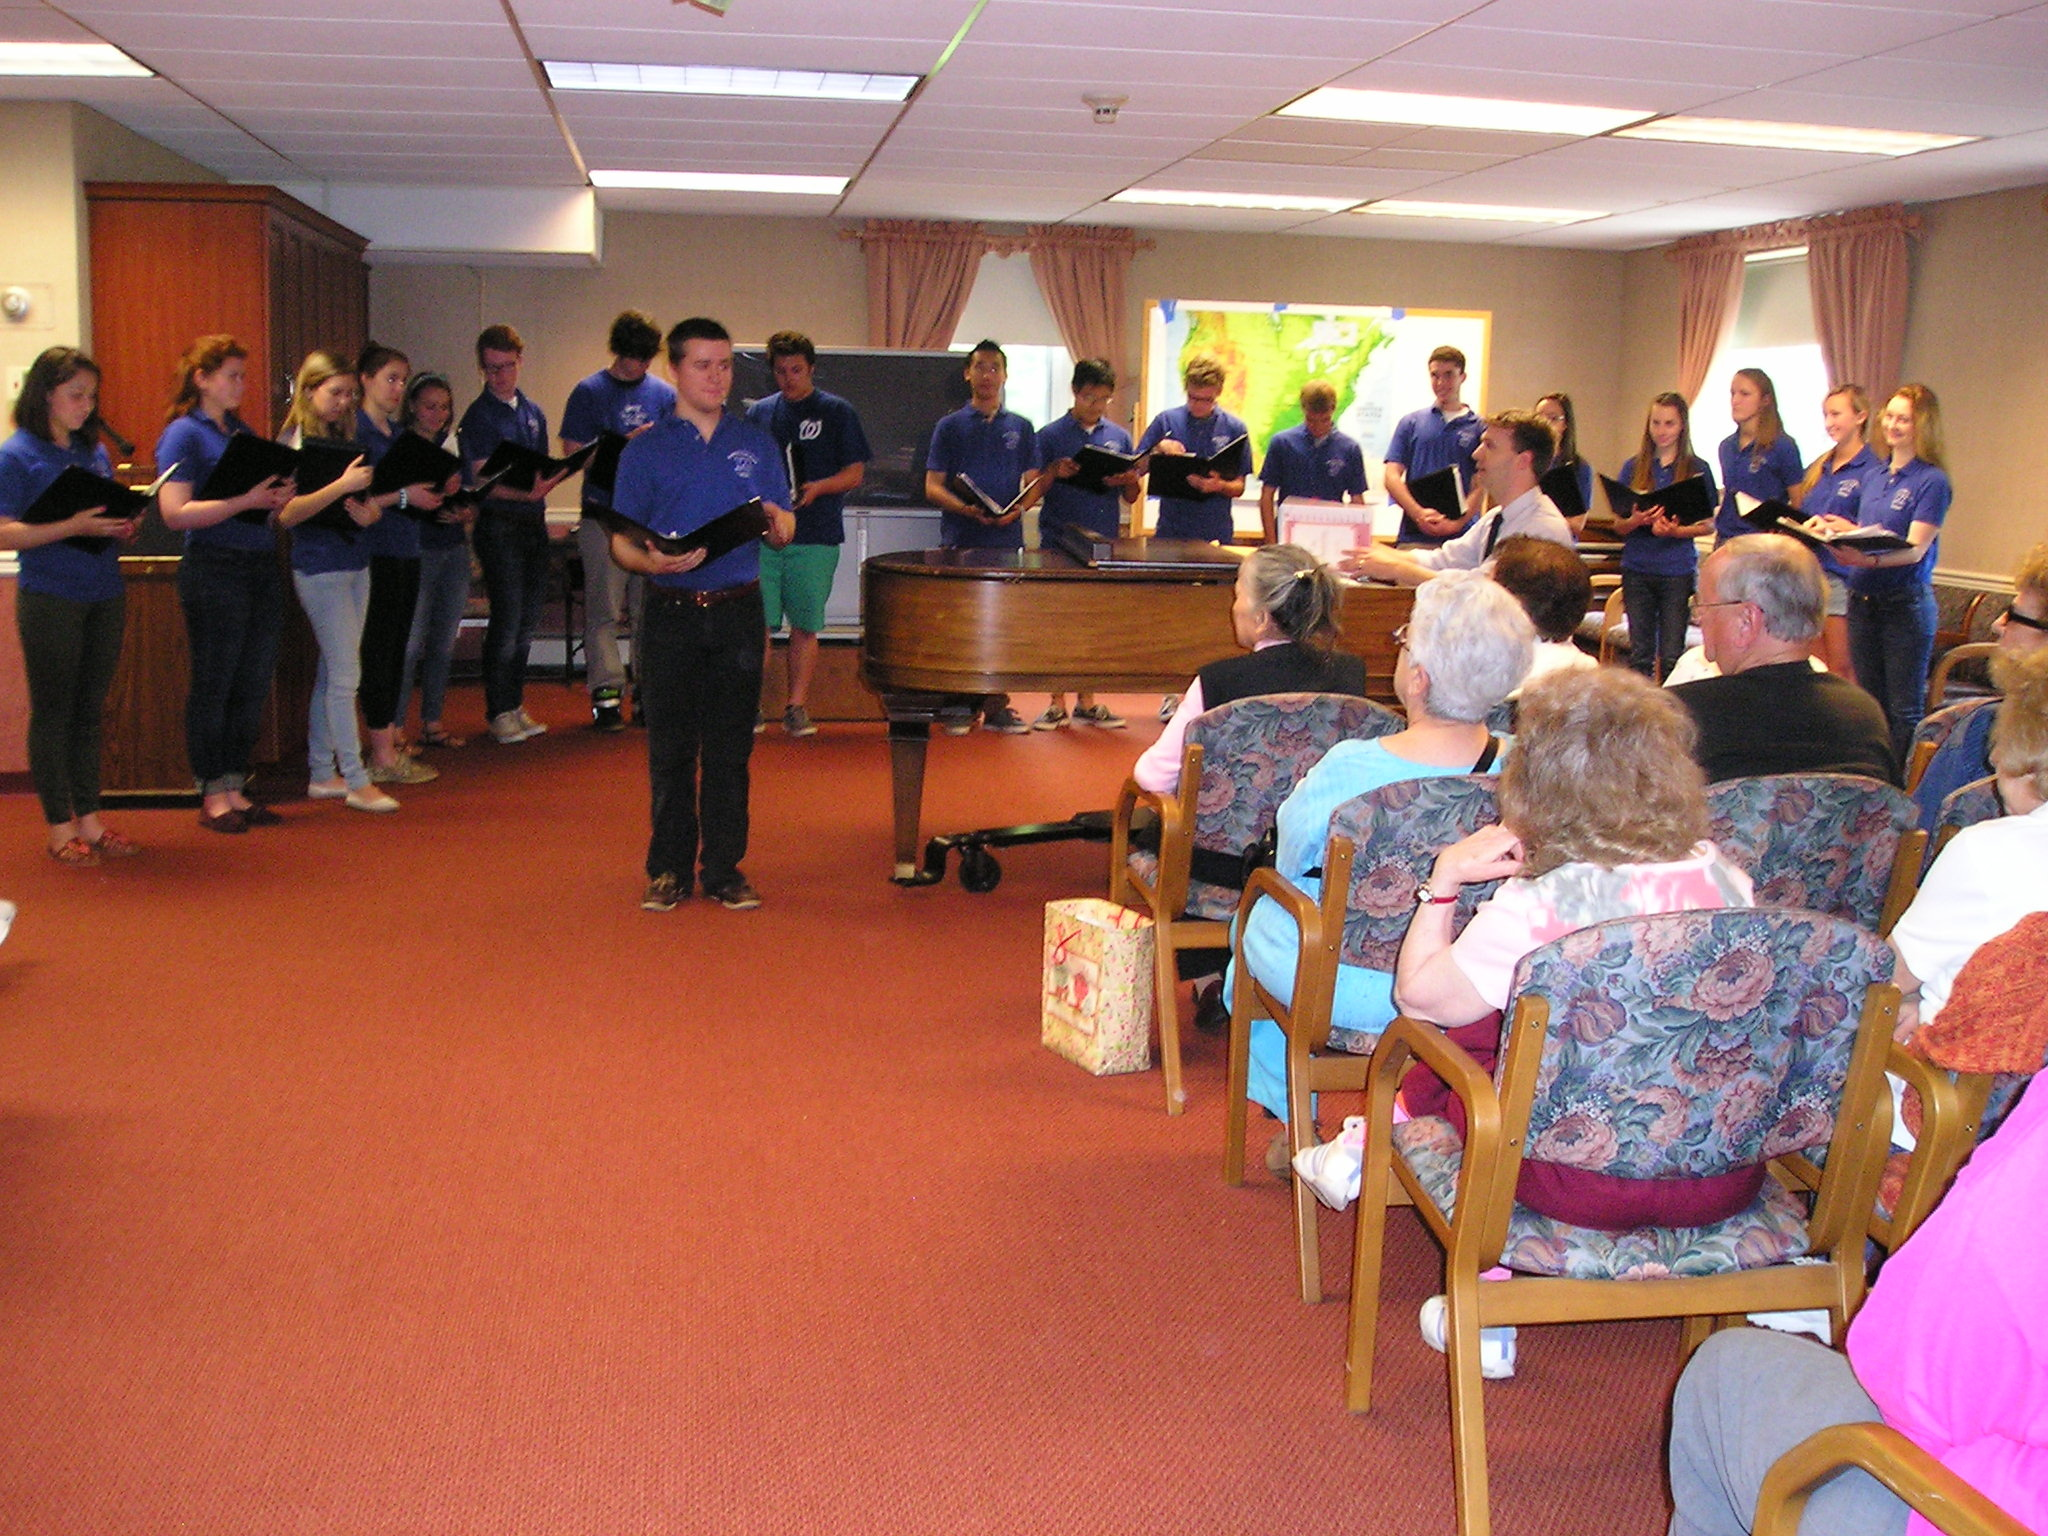 fb636869c9bf1464efd9_Senior_Citizen_performance_by_WHS_Chorale.JPG